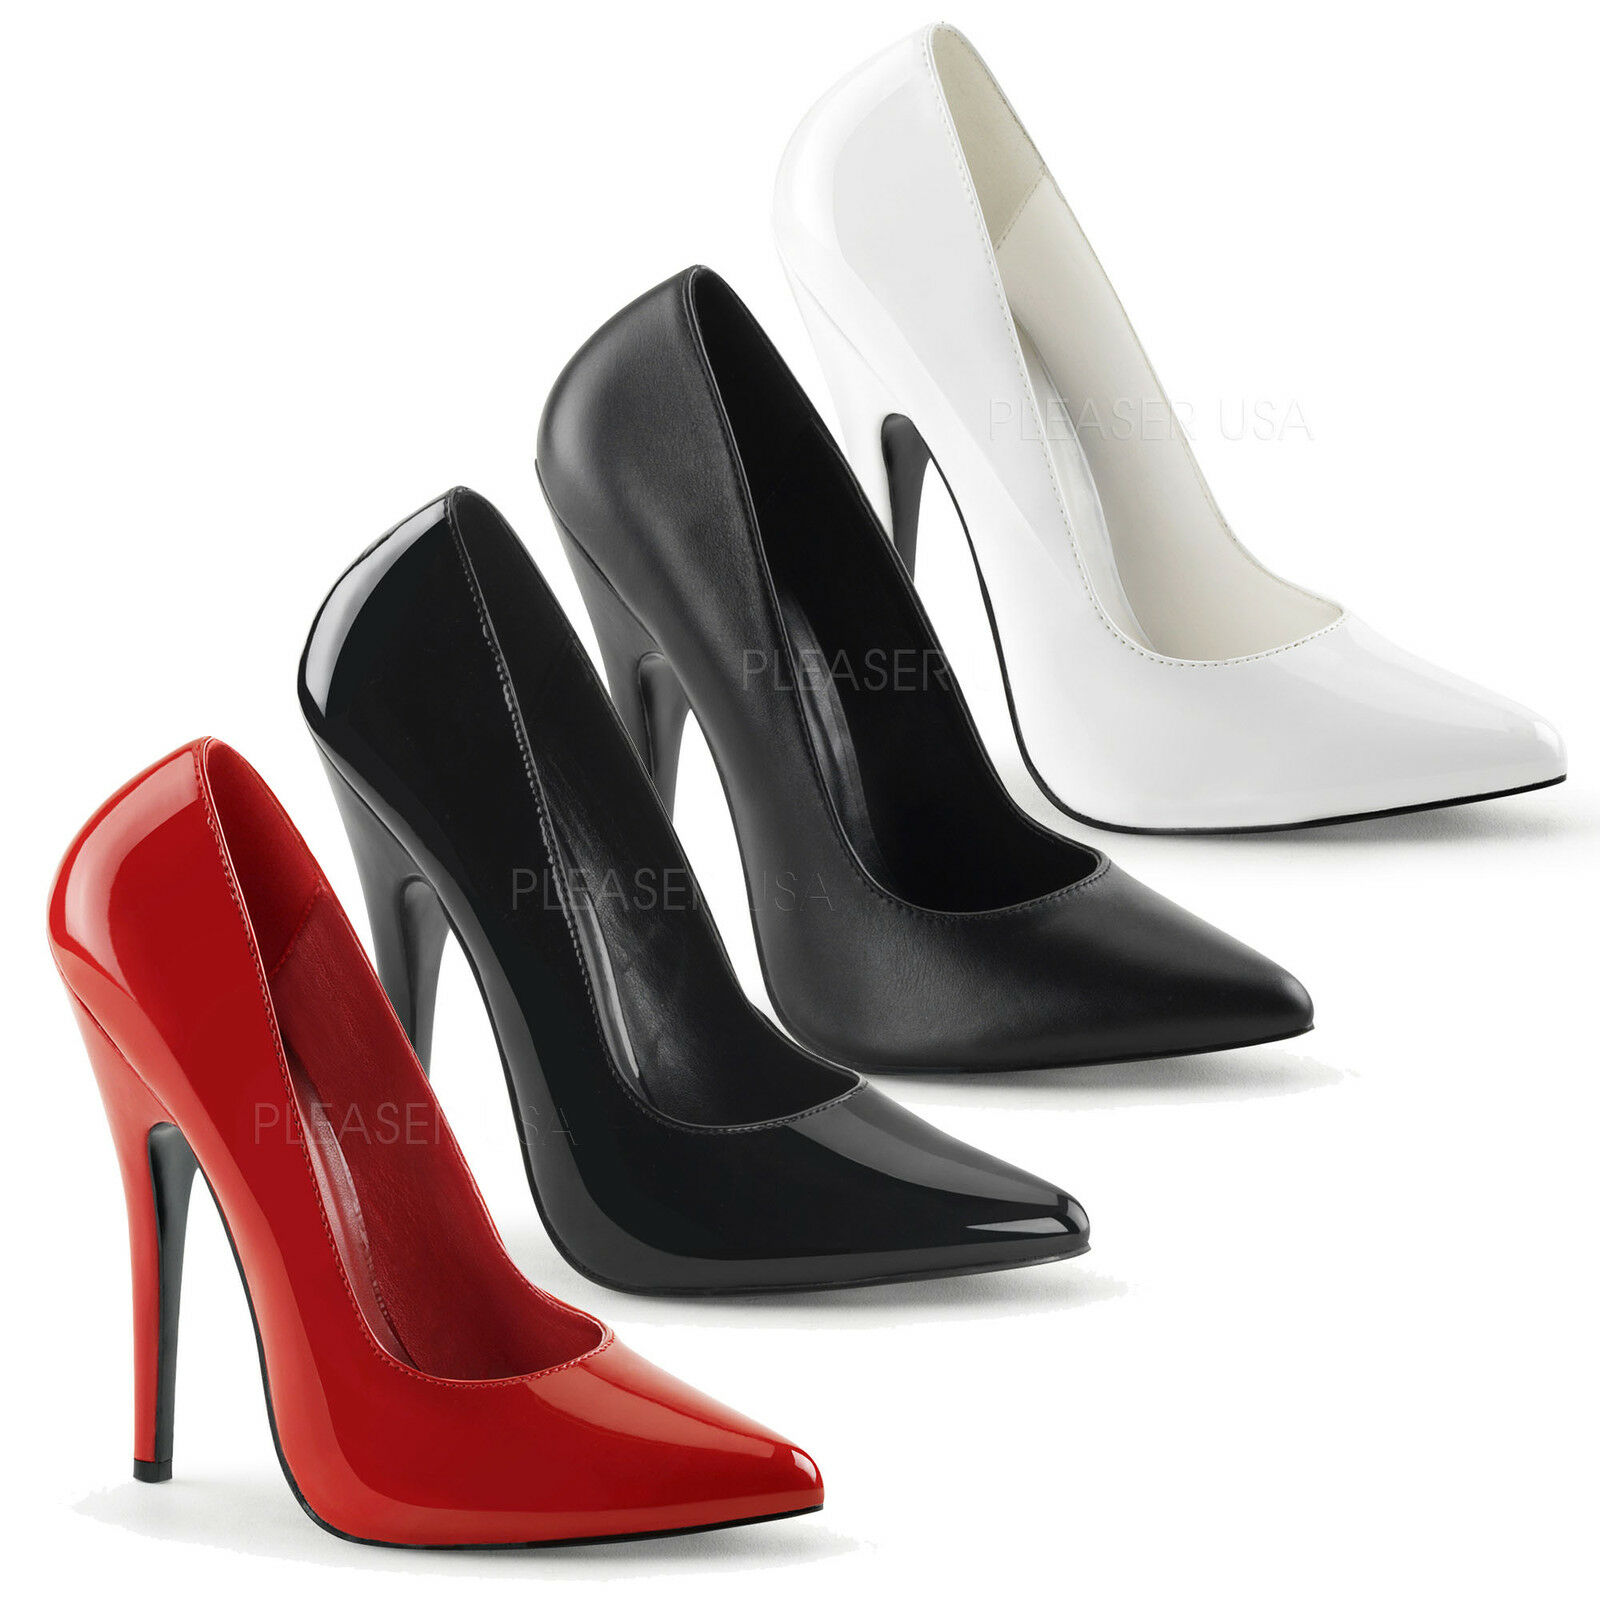 DEVIOUS By Pleaser - Domina-420 High Heel Sexy And Stunning Court Schuhe